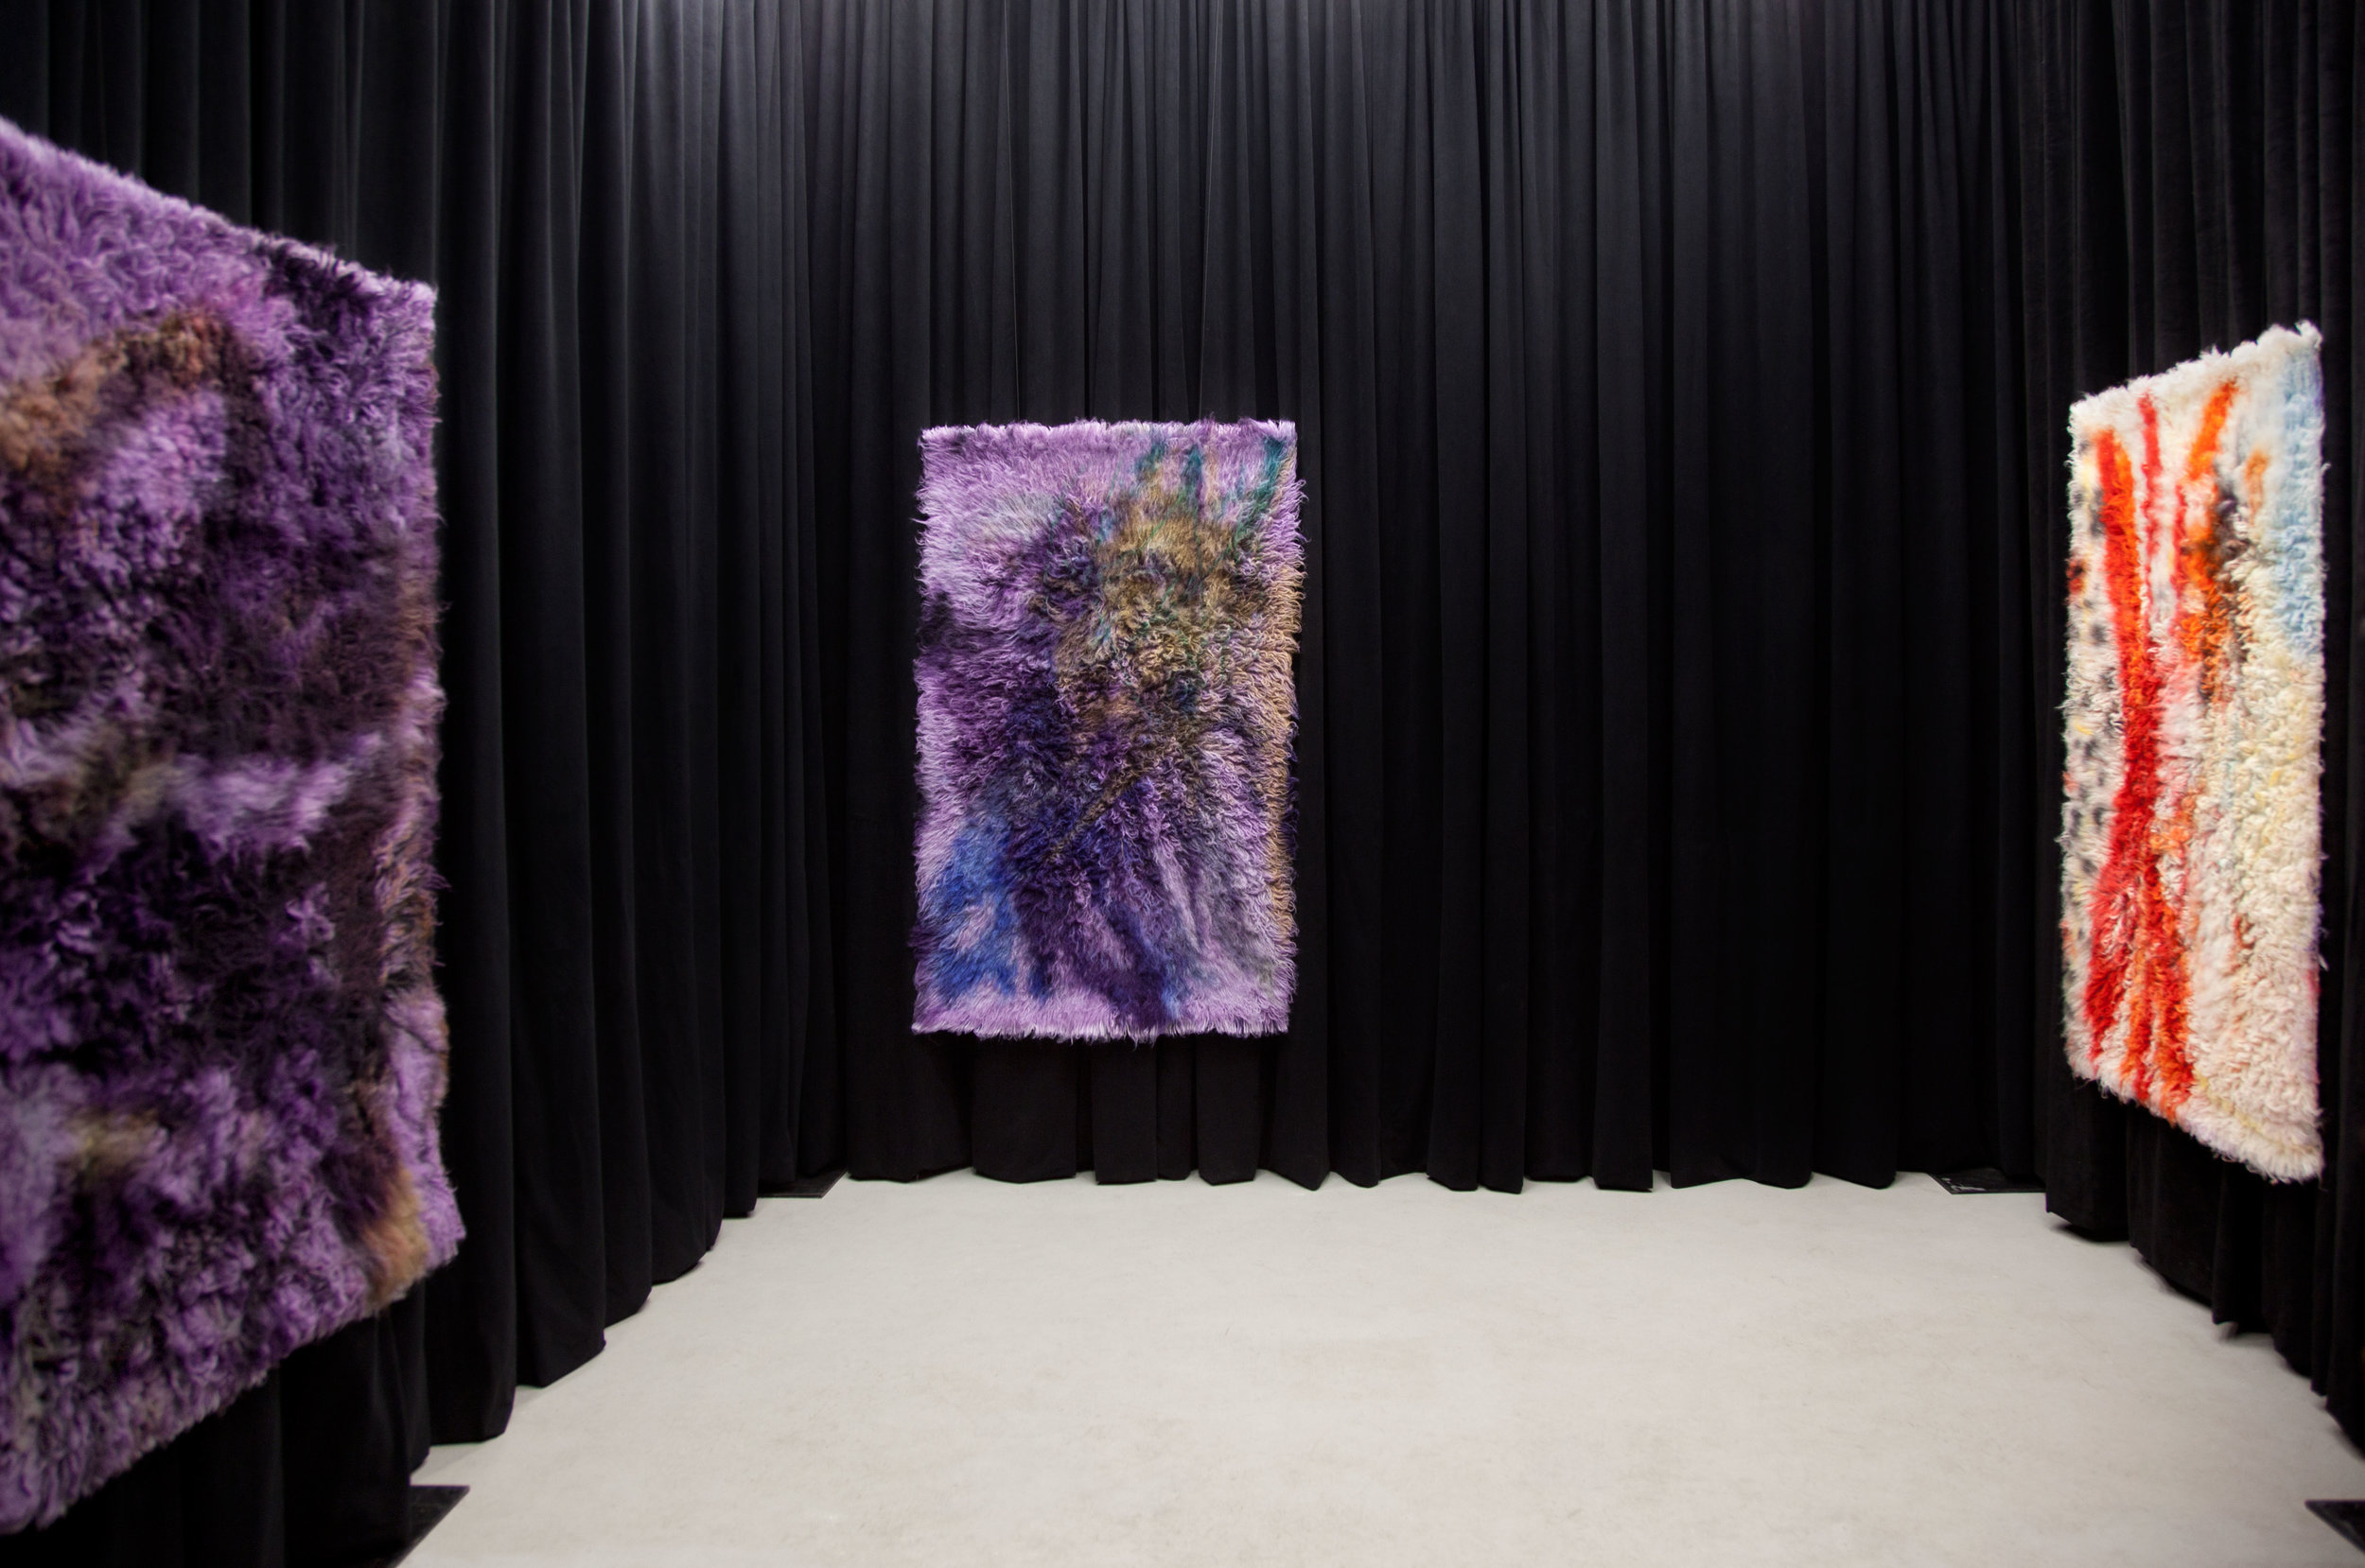 2017 Installation of dyed rug painting series hung over rented room dividers at DUPLEX  http://duplexduplex.ca/it-is-hard-to-tape-a-fish.html  Vancouver B.C. Canada